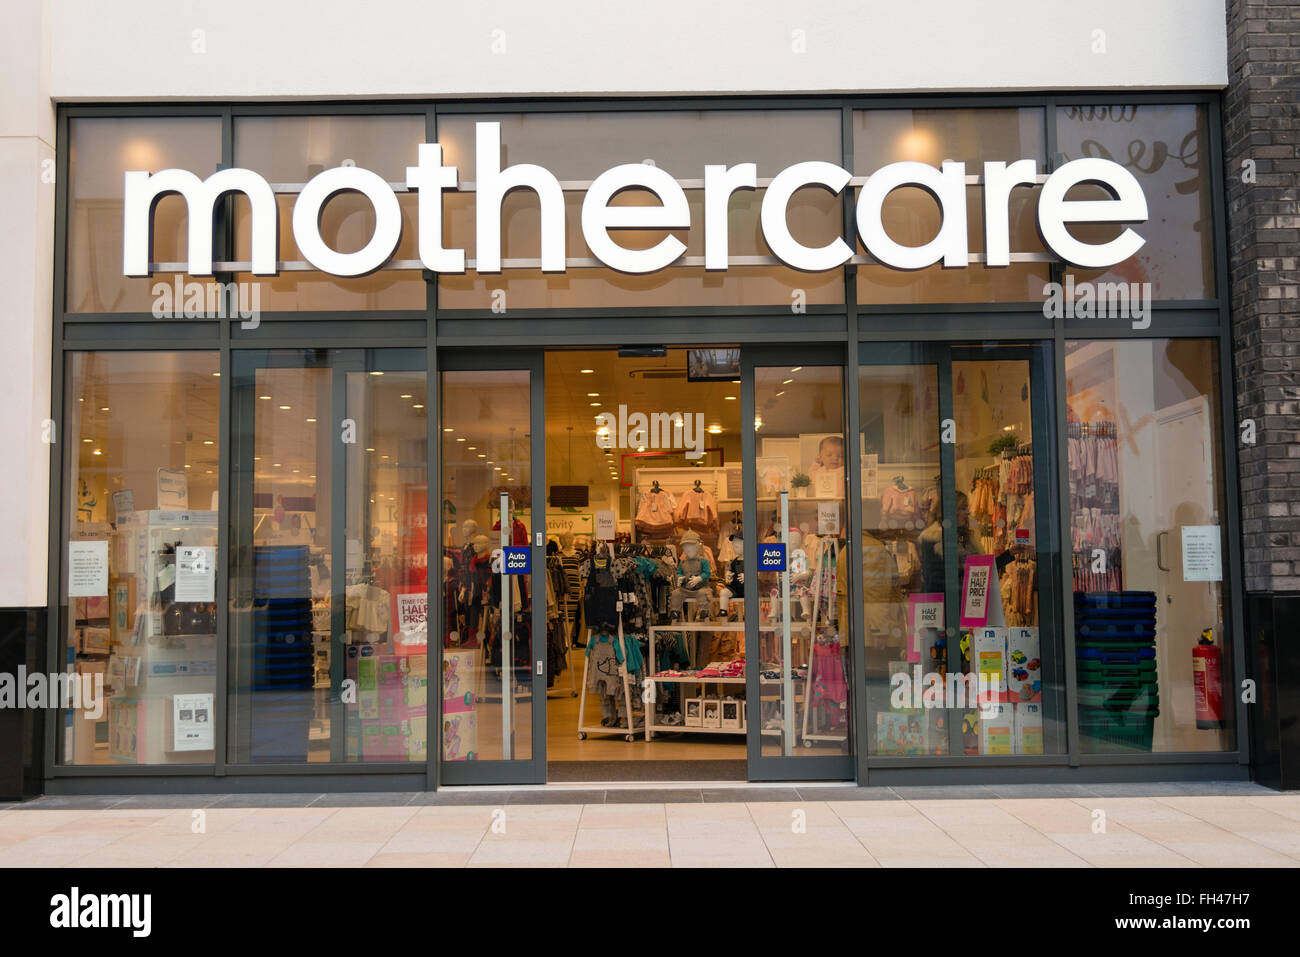 Mothercare store, UK. Stock Photo